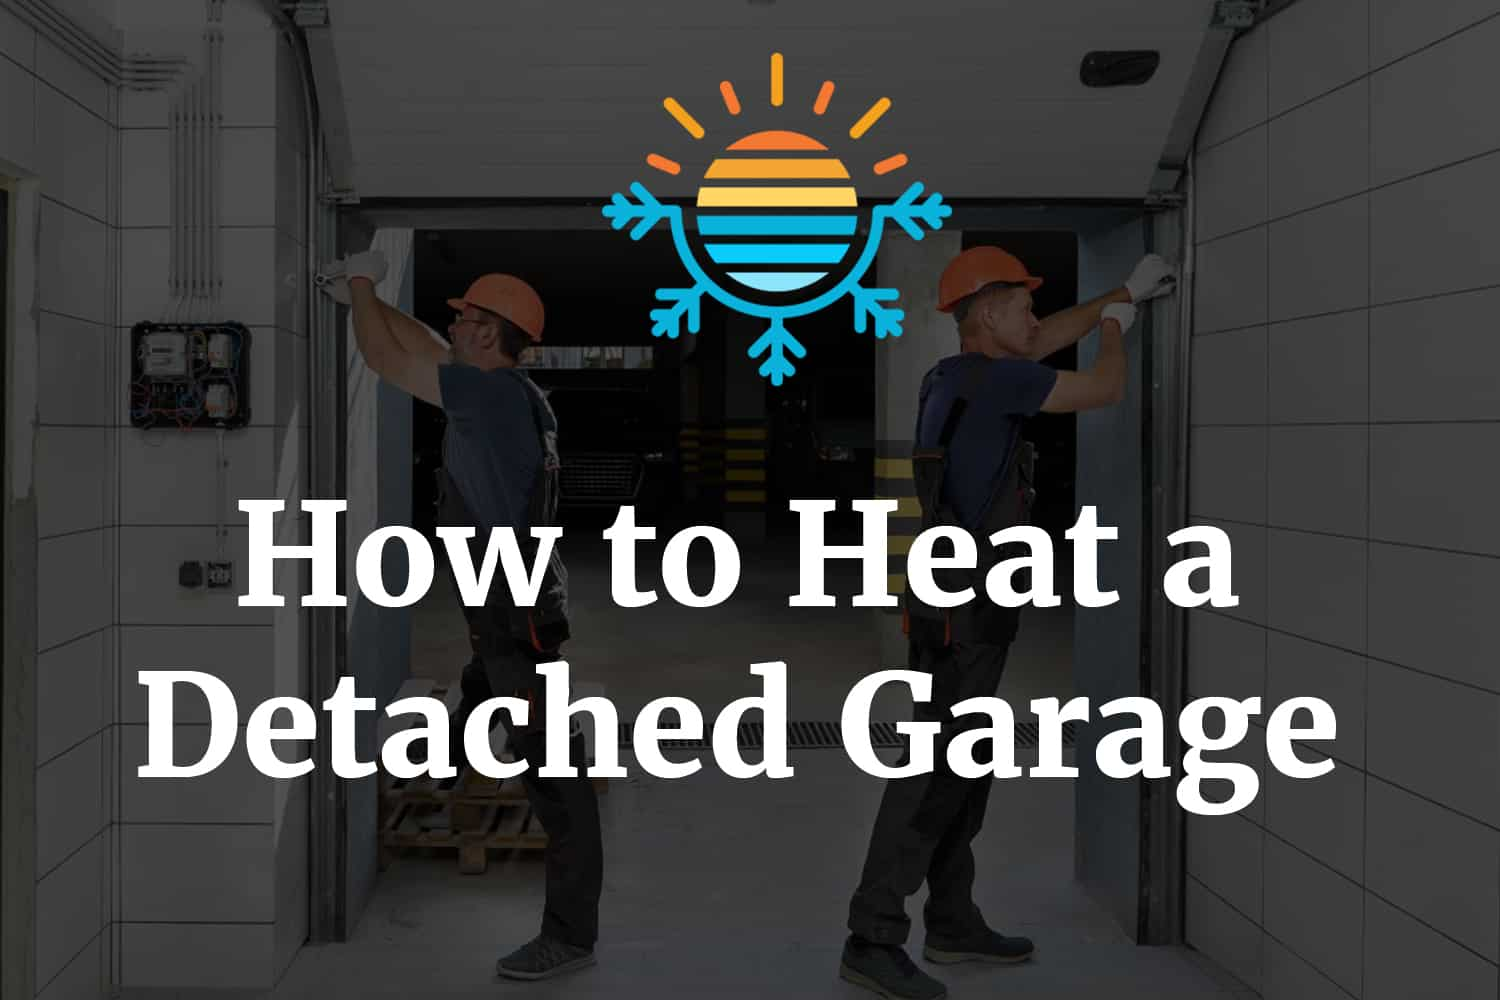 How to heat a detached garage